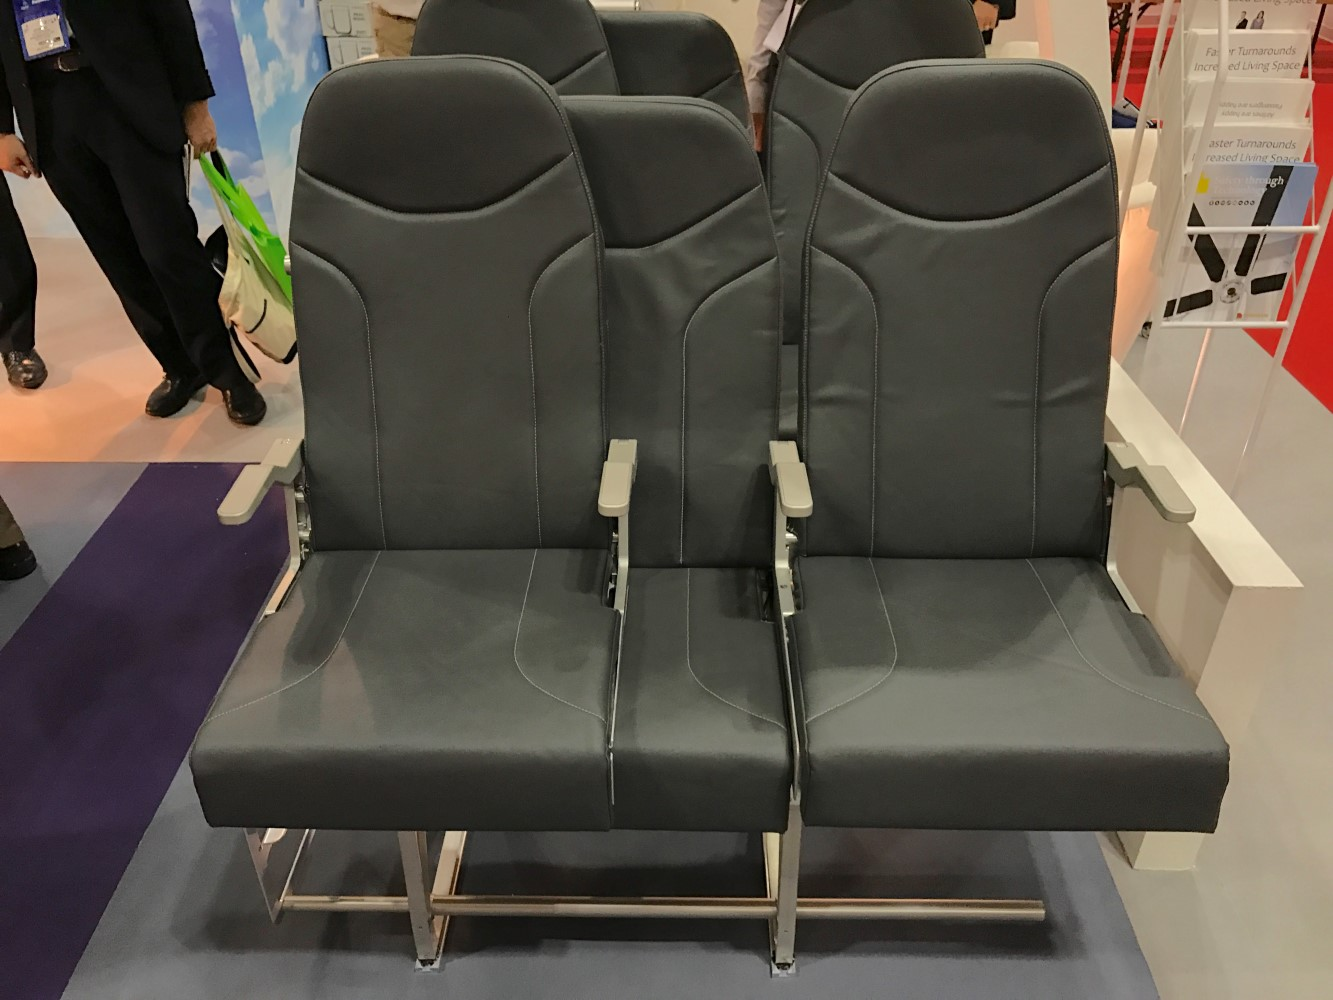 Functional design is key to this mock-up of the seat. Image: John Walton